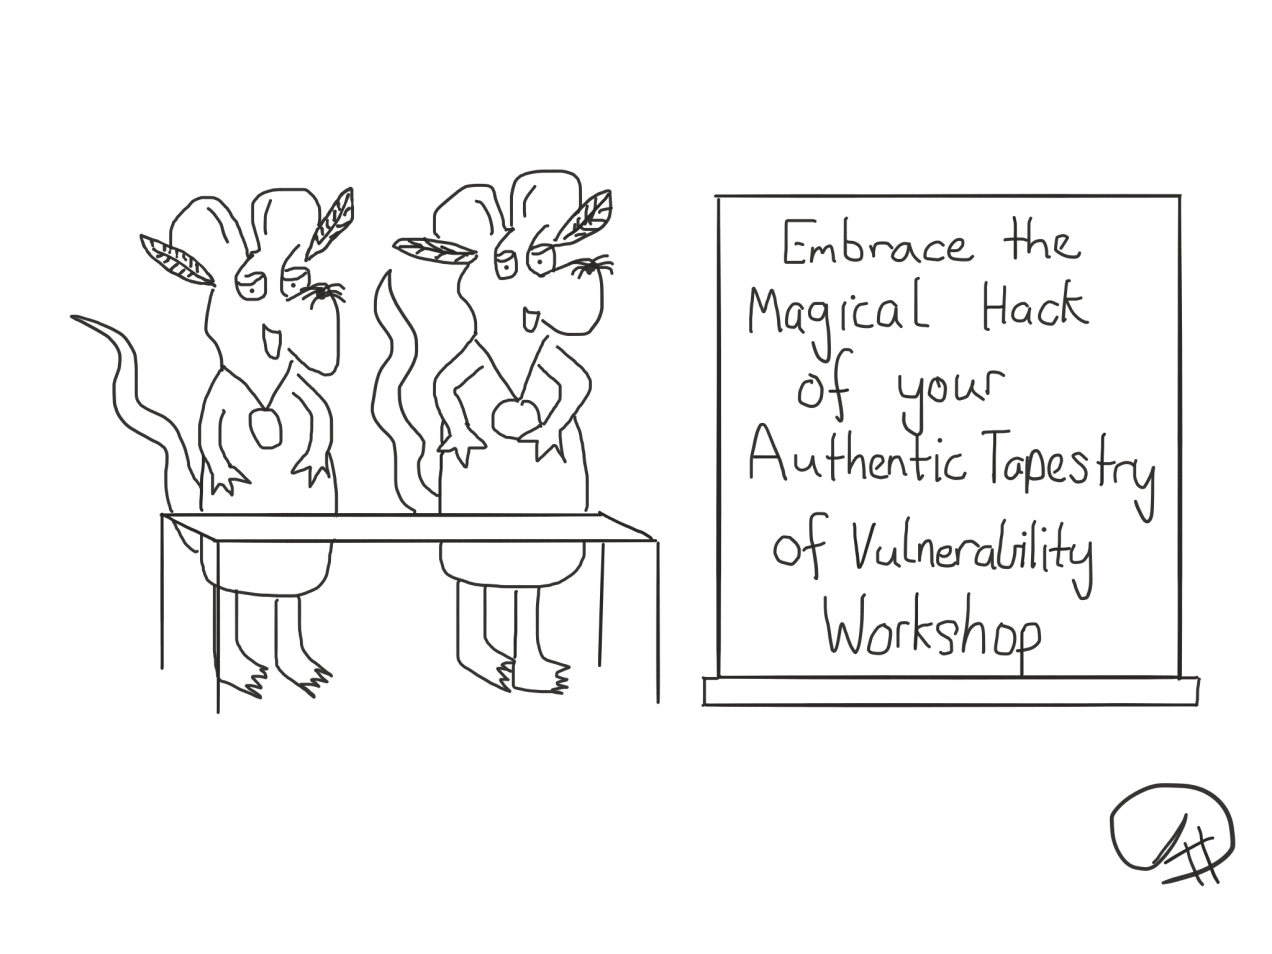 Embrace the Magical Hack Workshop The Happy Rat Cartoon